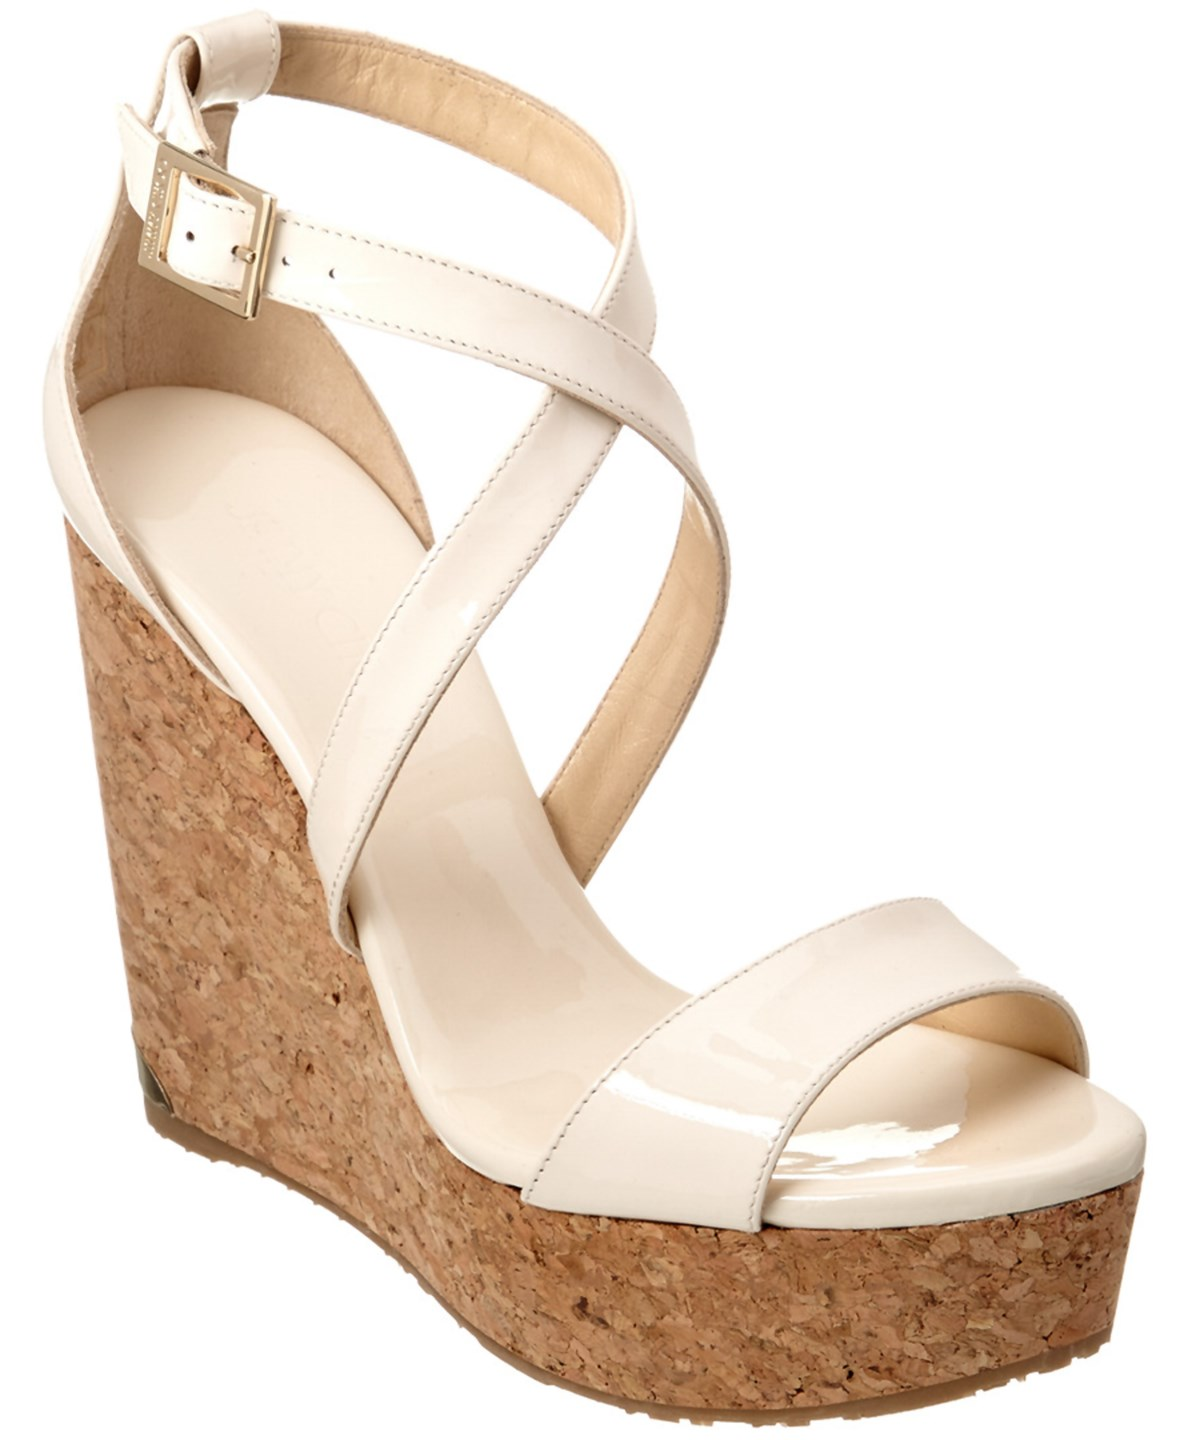 JIMMY CHOO PORTIA 120 PATENT CORK WEDGE SANDAL